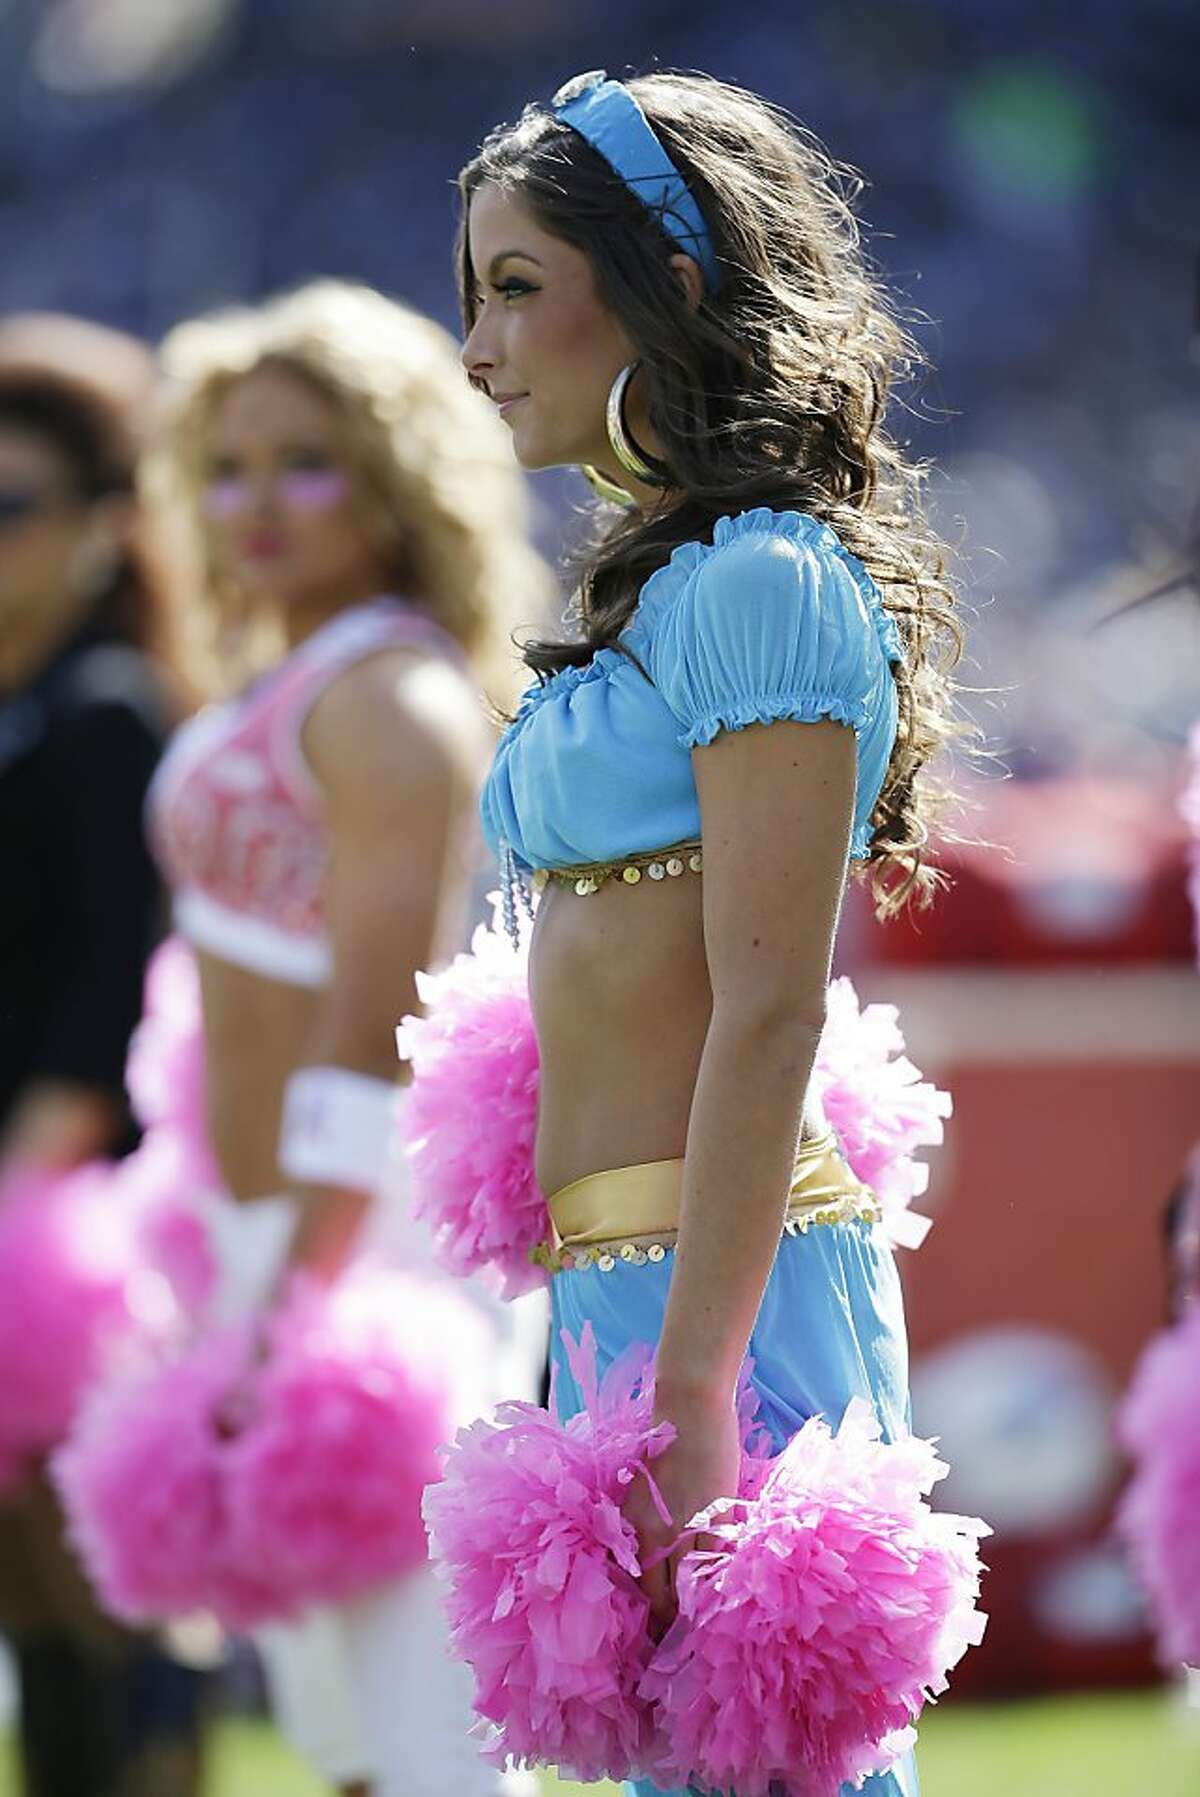 Tennessee Titans cheerleaders perform while wearing Halloween costumes during the first half of an NFL football game against the Indianapolis Colts, Sunday, Oct. 28, 2012, in Nashville, Tenn. (AP Photo/Mark Humphrey)